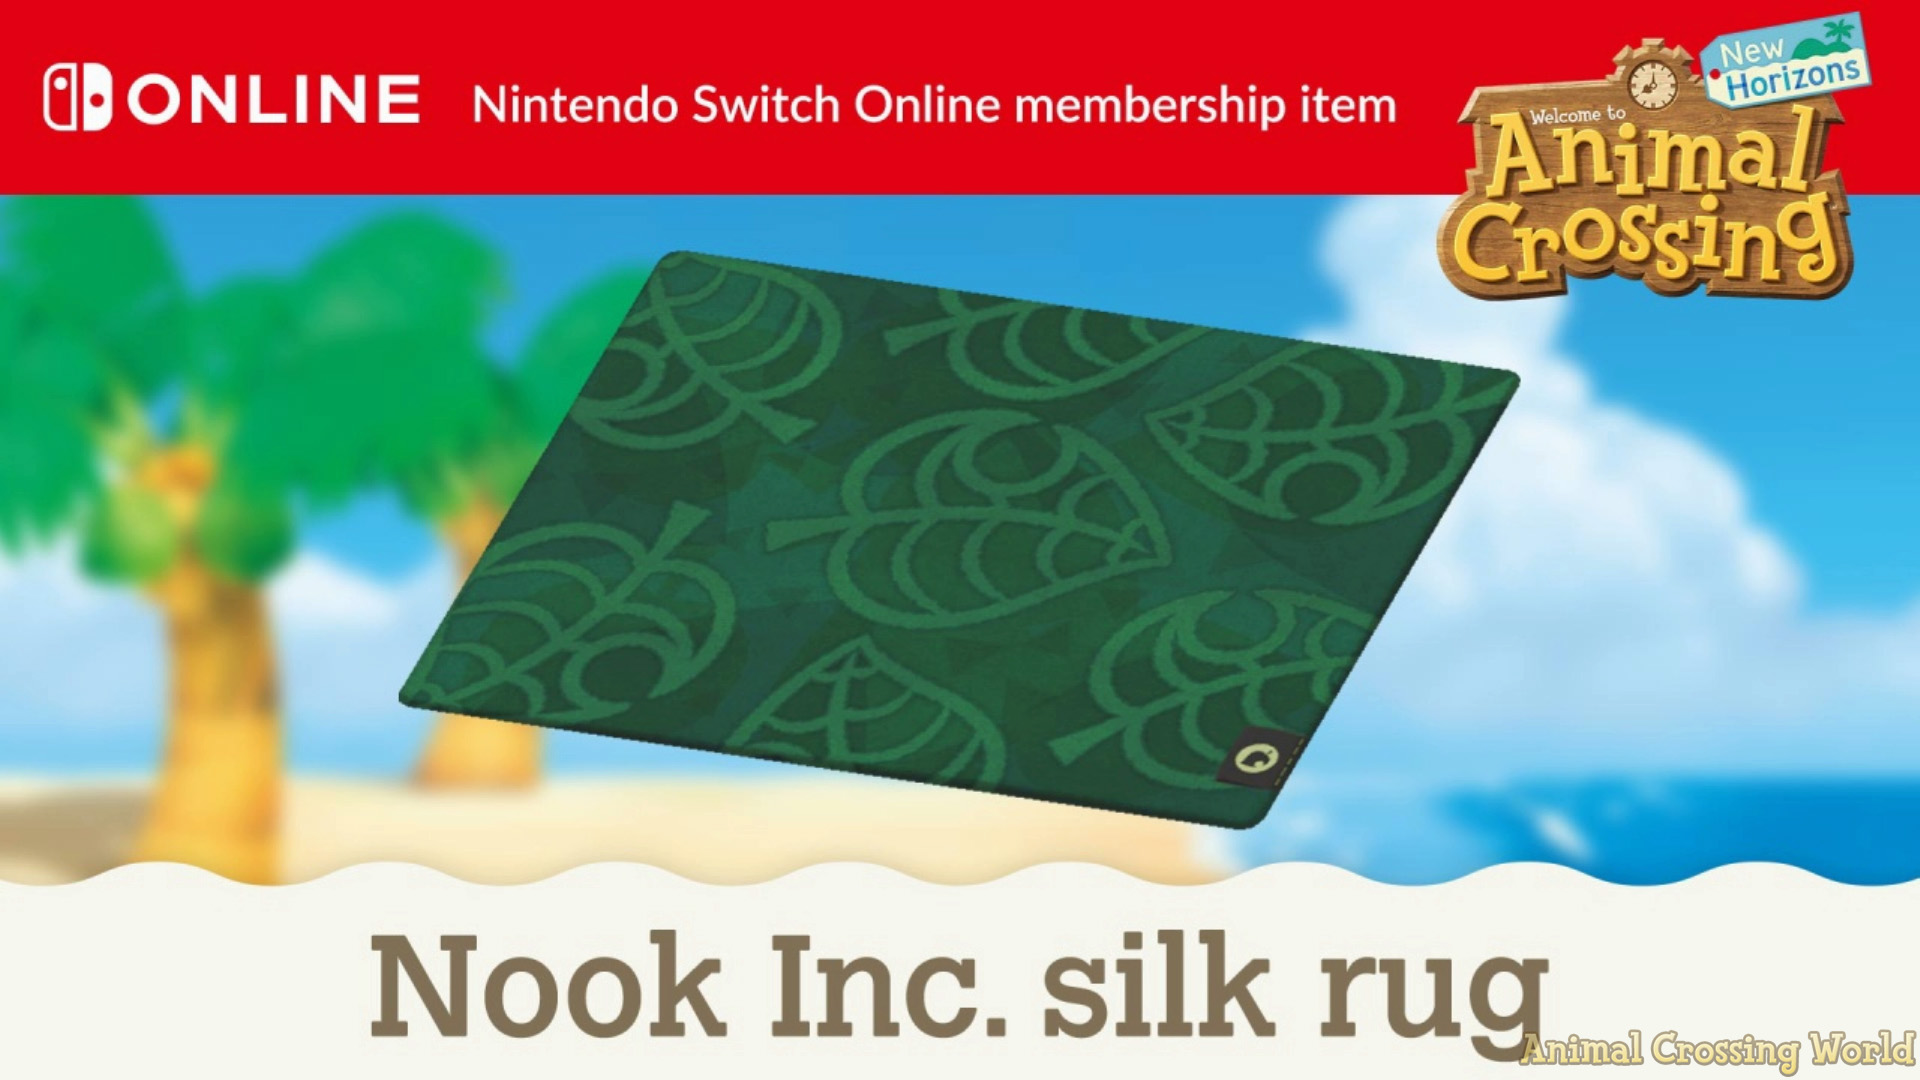 How To Get Exclusive Nook Inc Silk Rug In Animal Crossing New